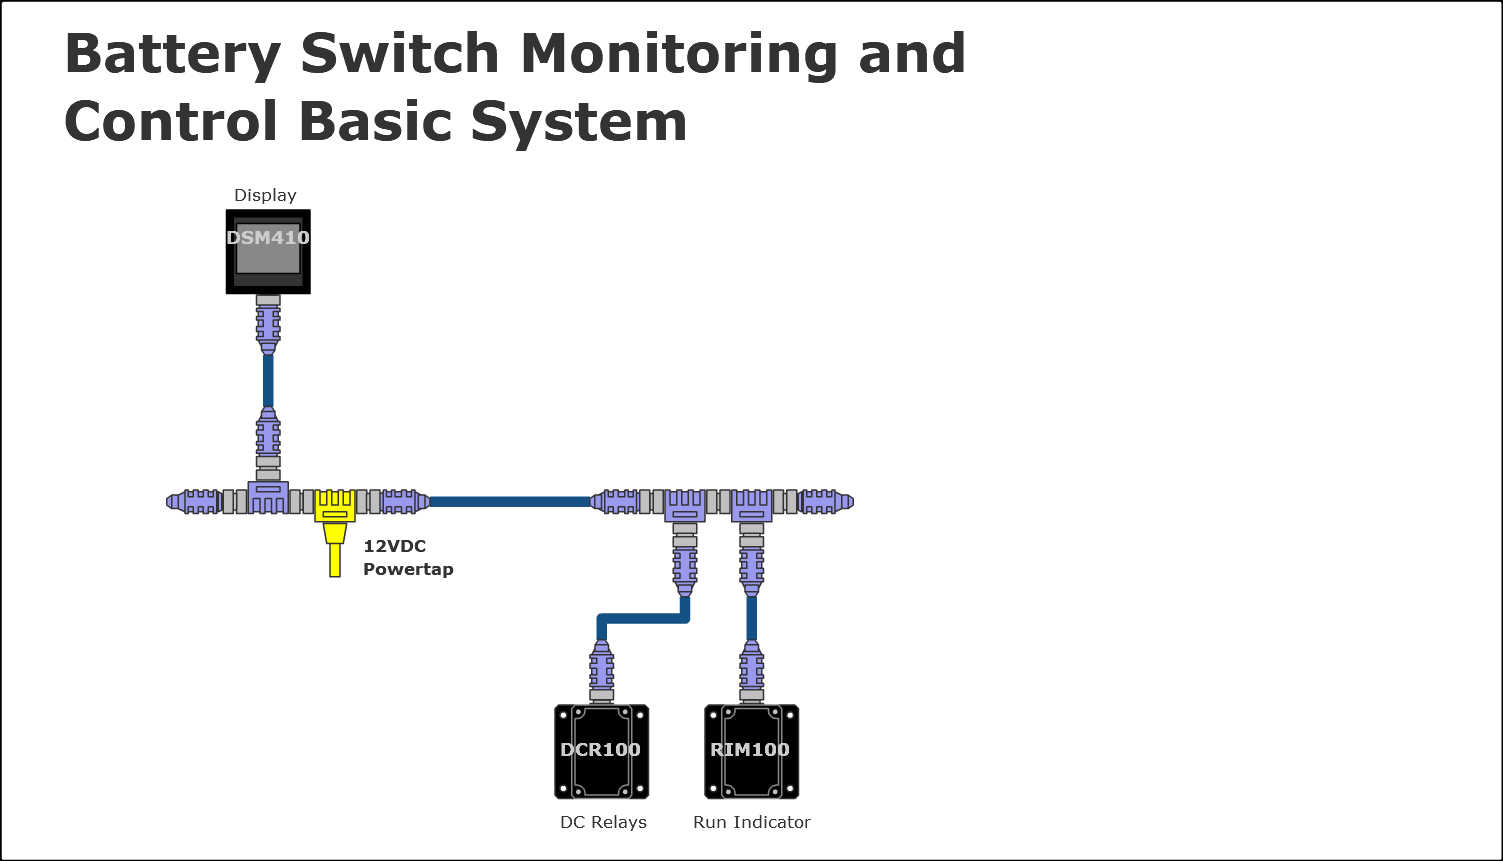 Network Wiring Diagram Tool Maretron Basic Battery Switch Monitoring